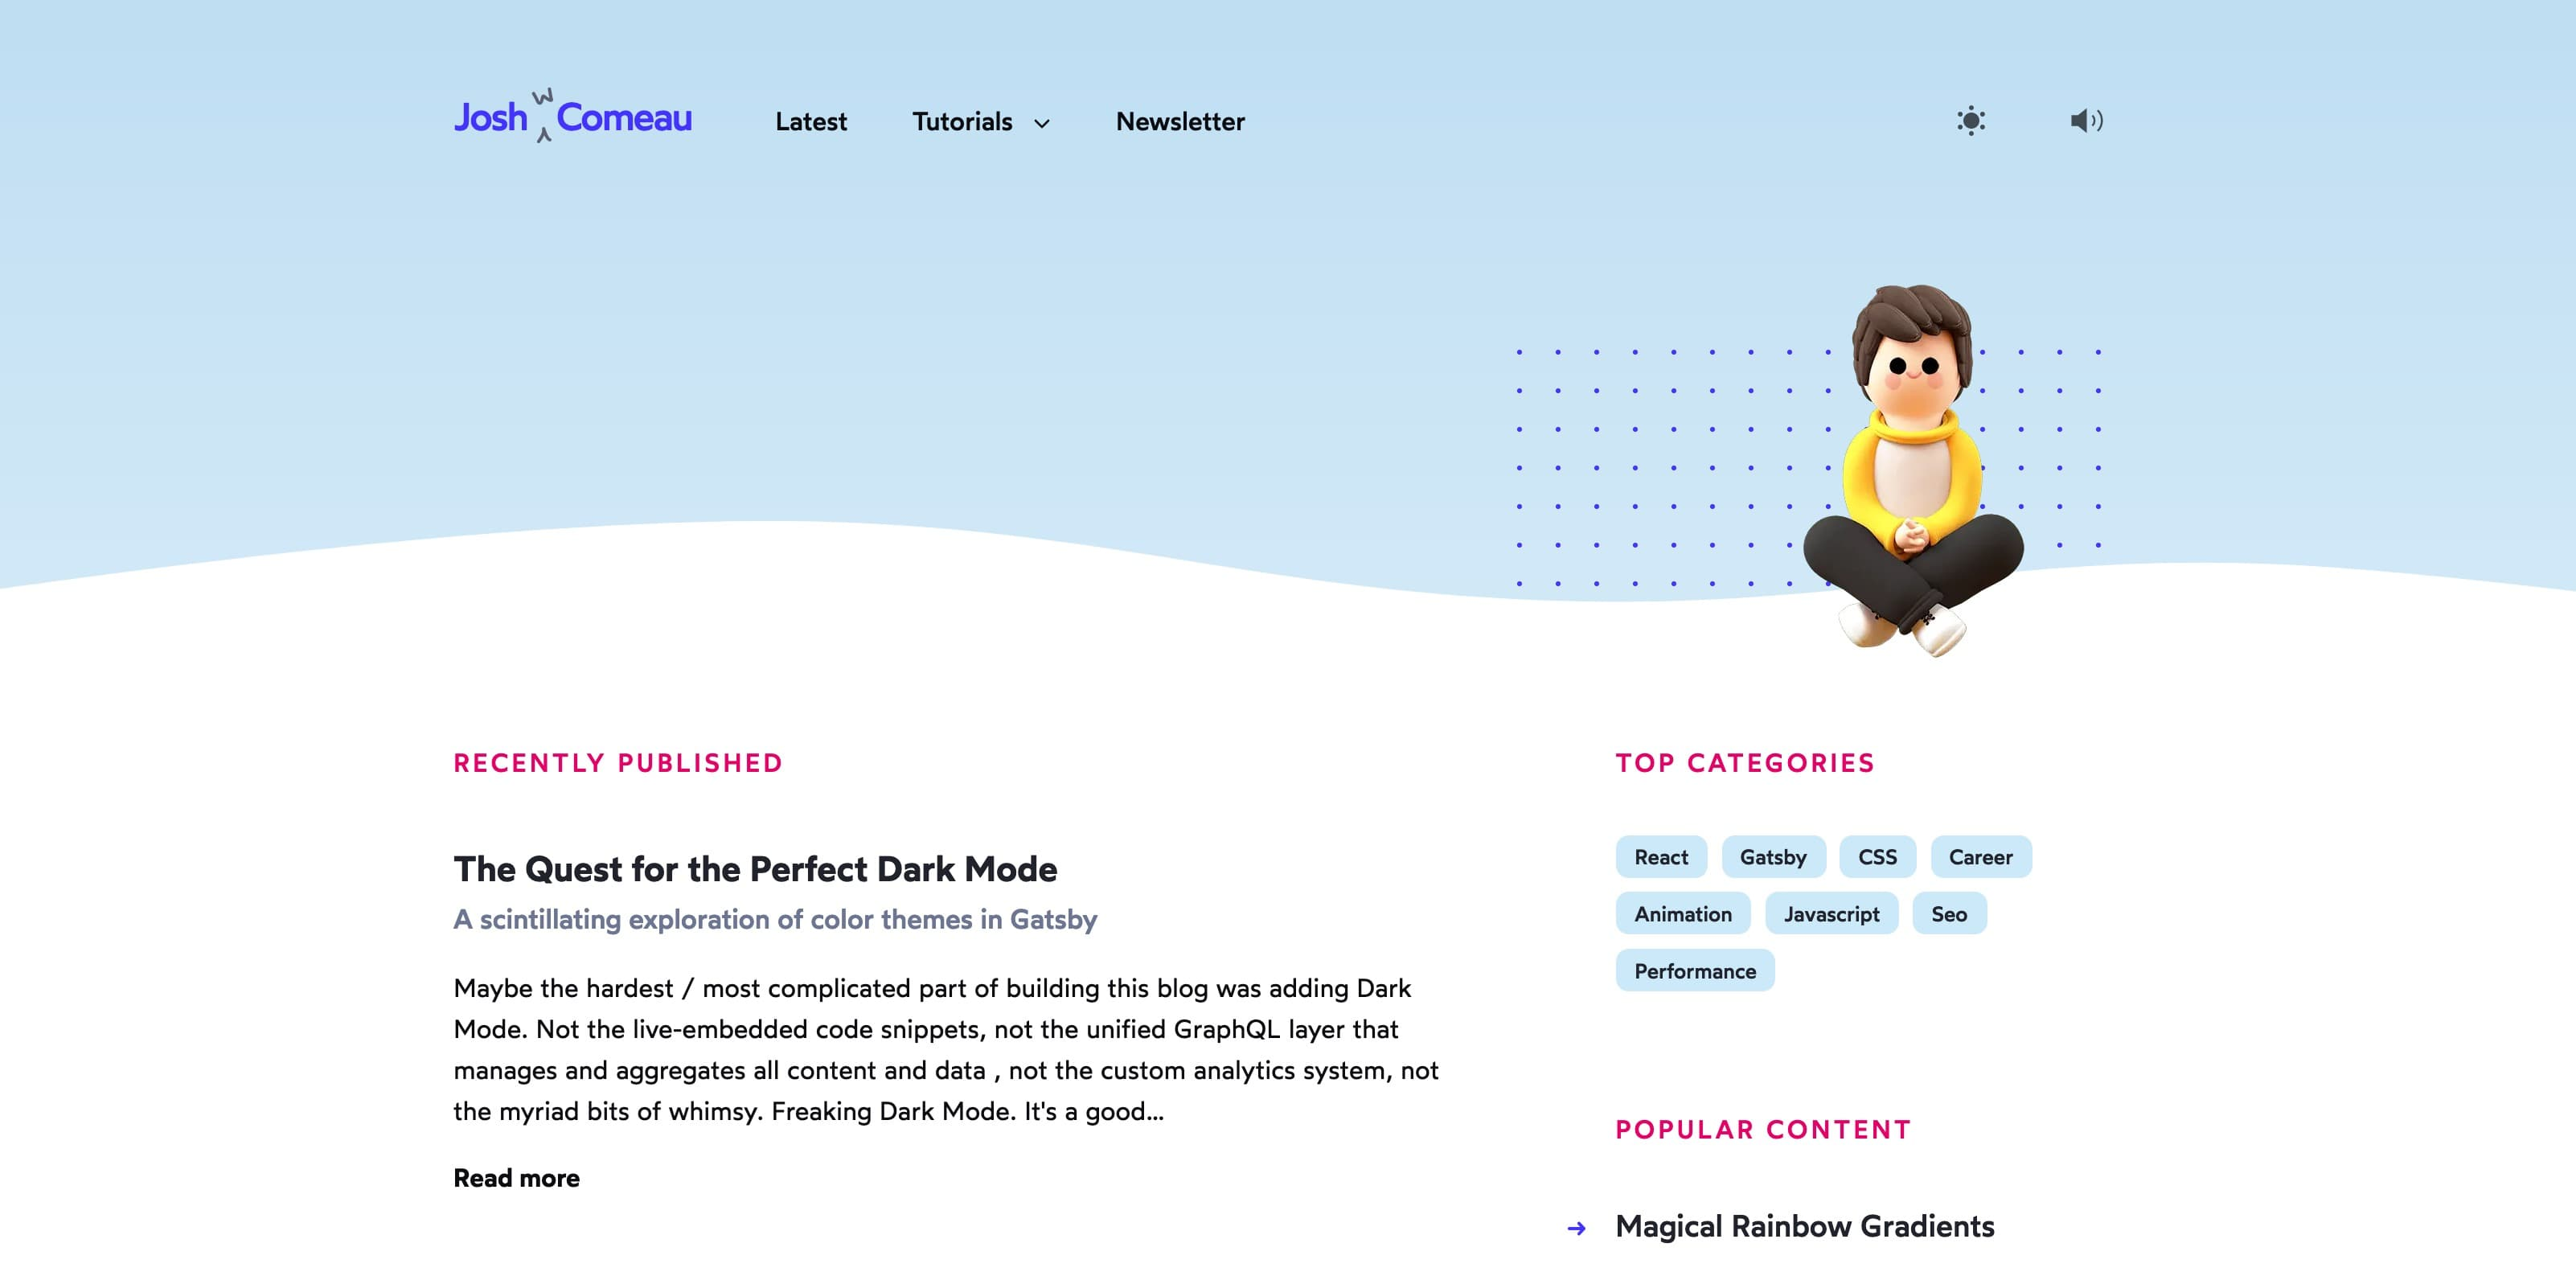 Josh's stunning homepage which features a 3D model of himself that looks a bit like a clay model